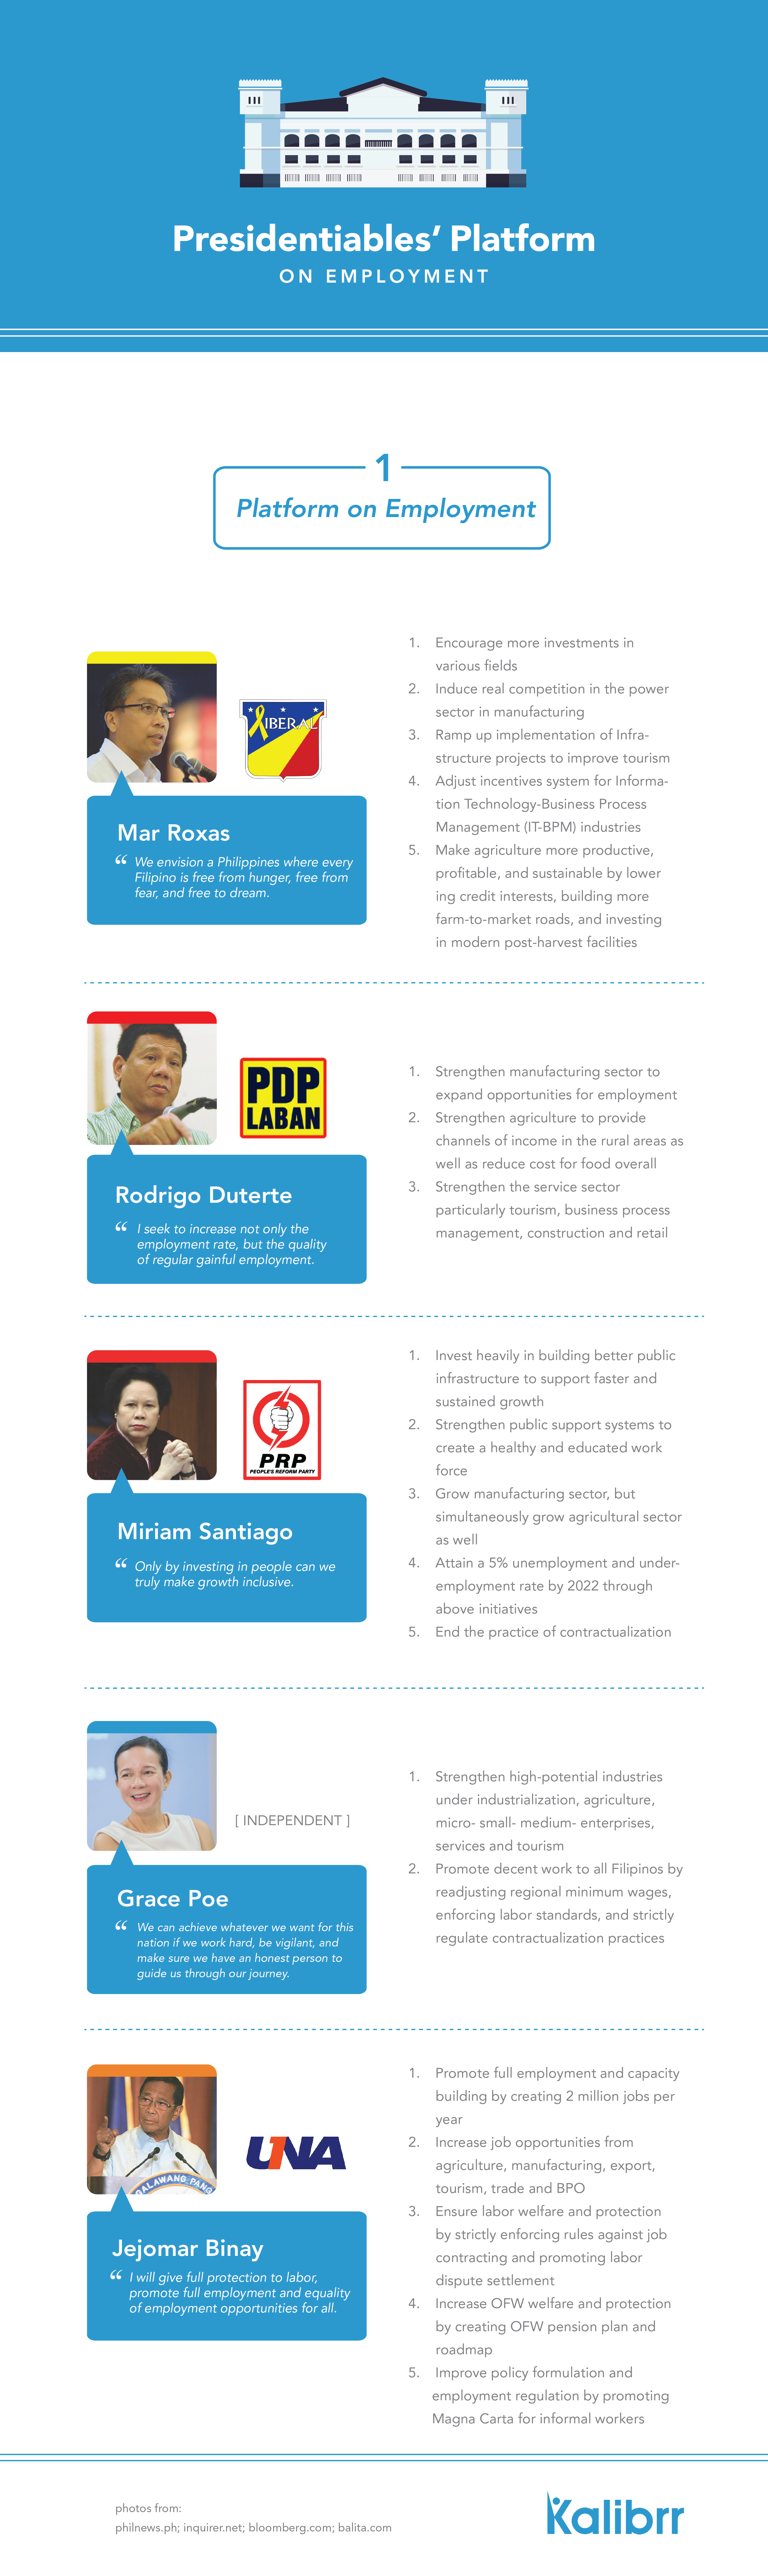 [Infographic] Presidentiables Platform - 01